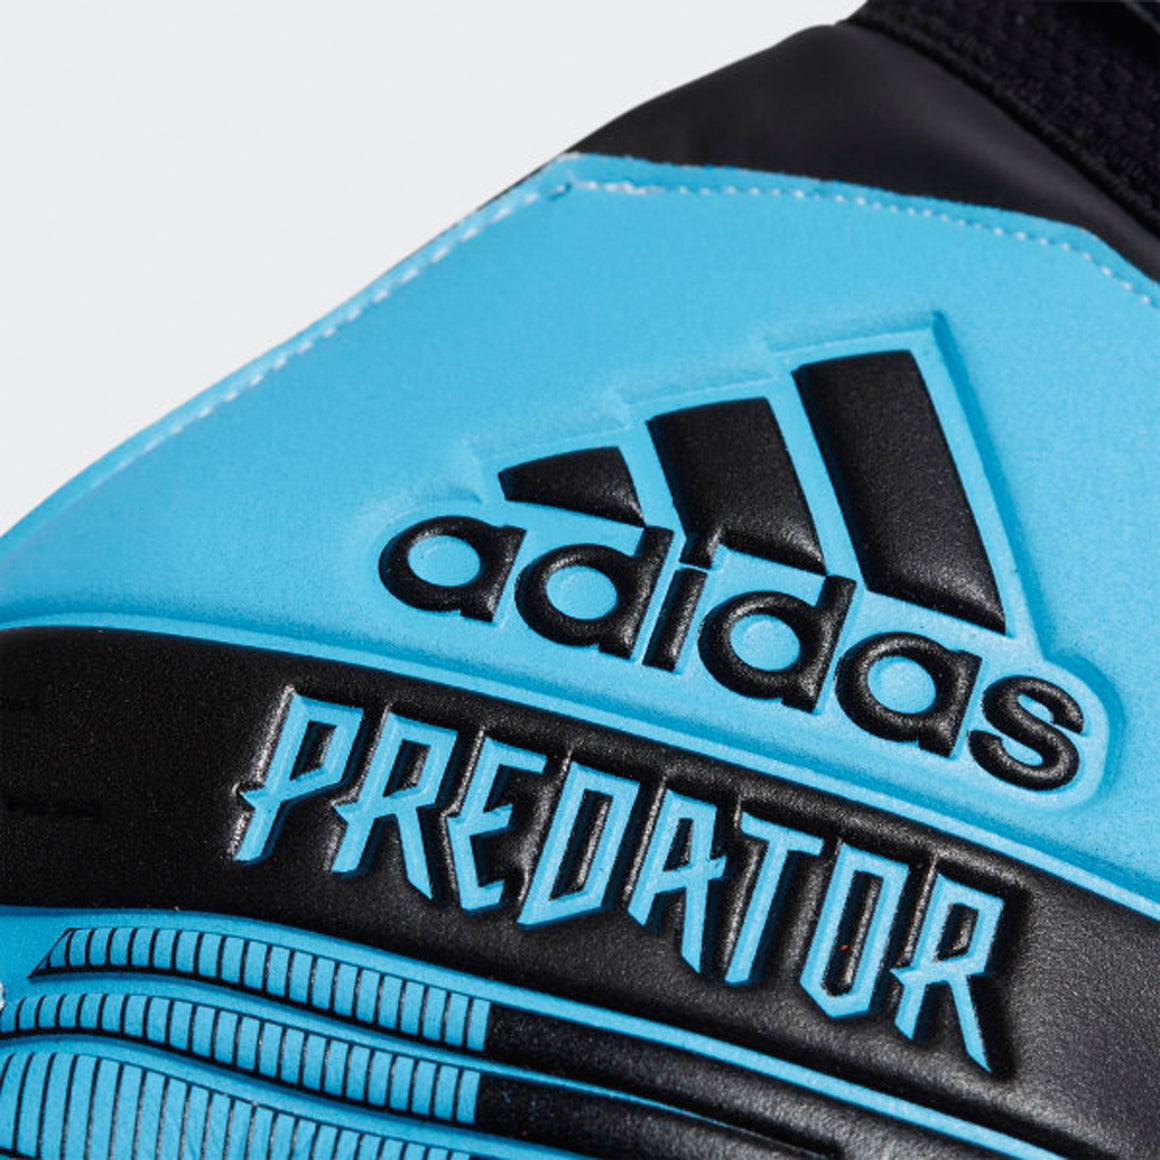 Predator TTRN F5 Football Gloves for Men in Sky